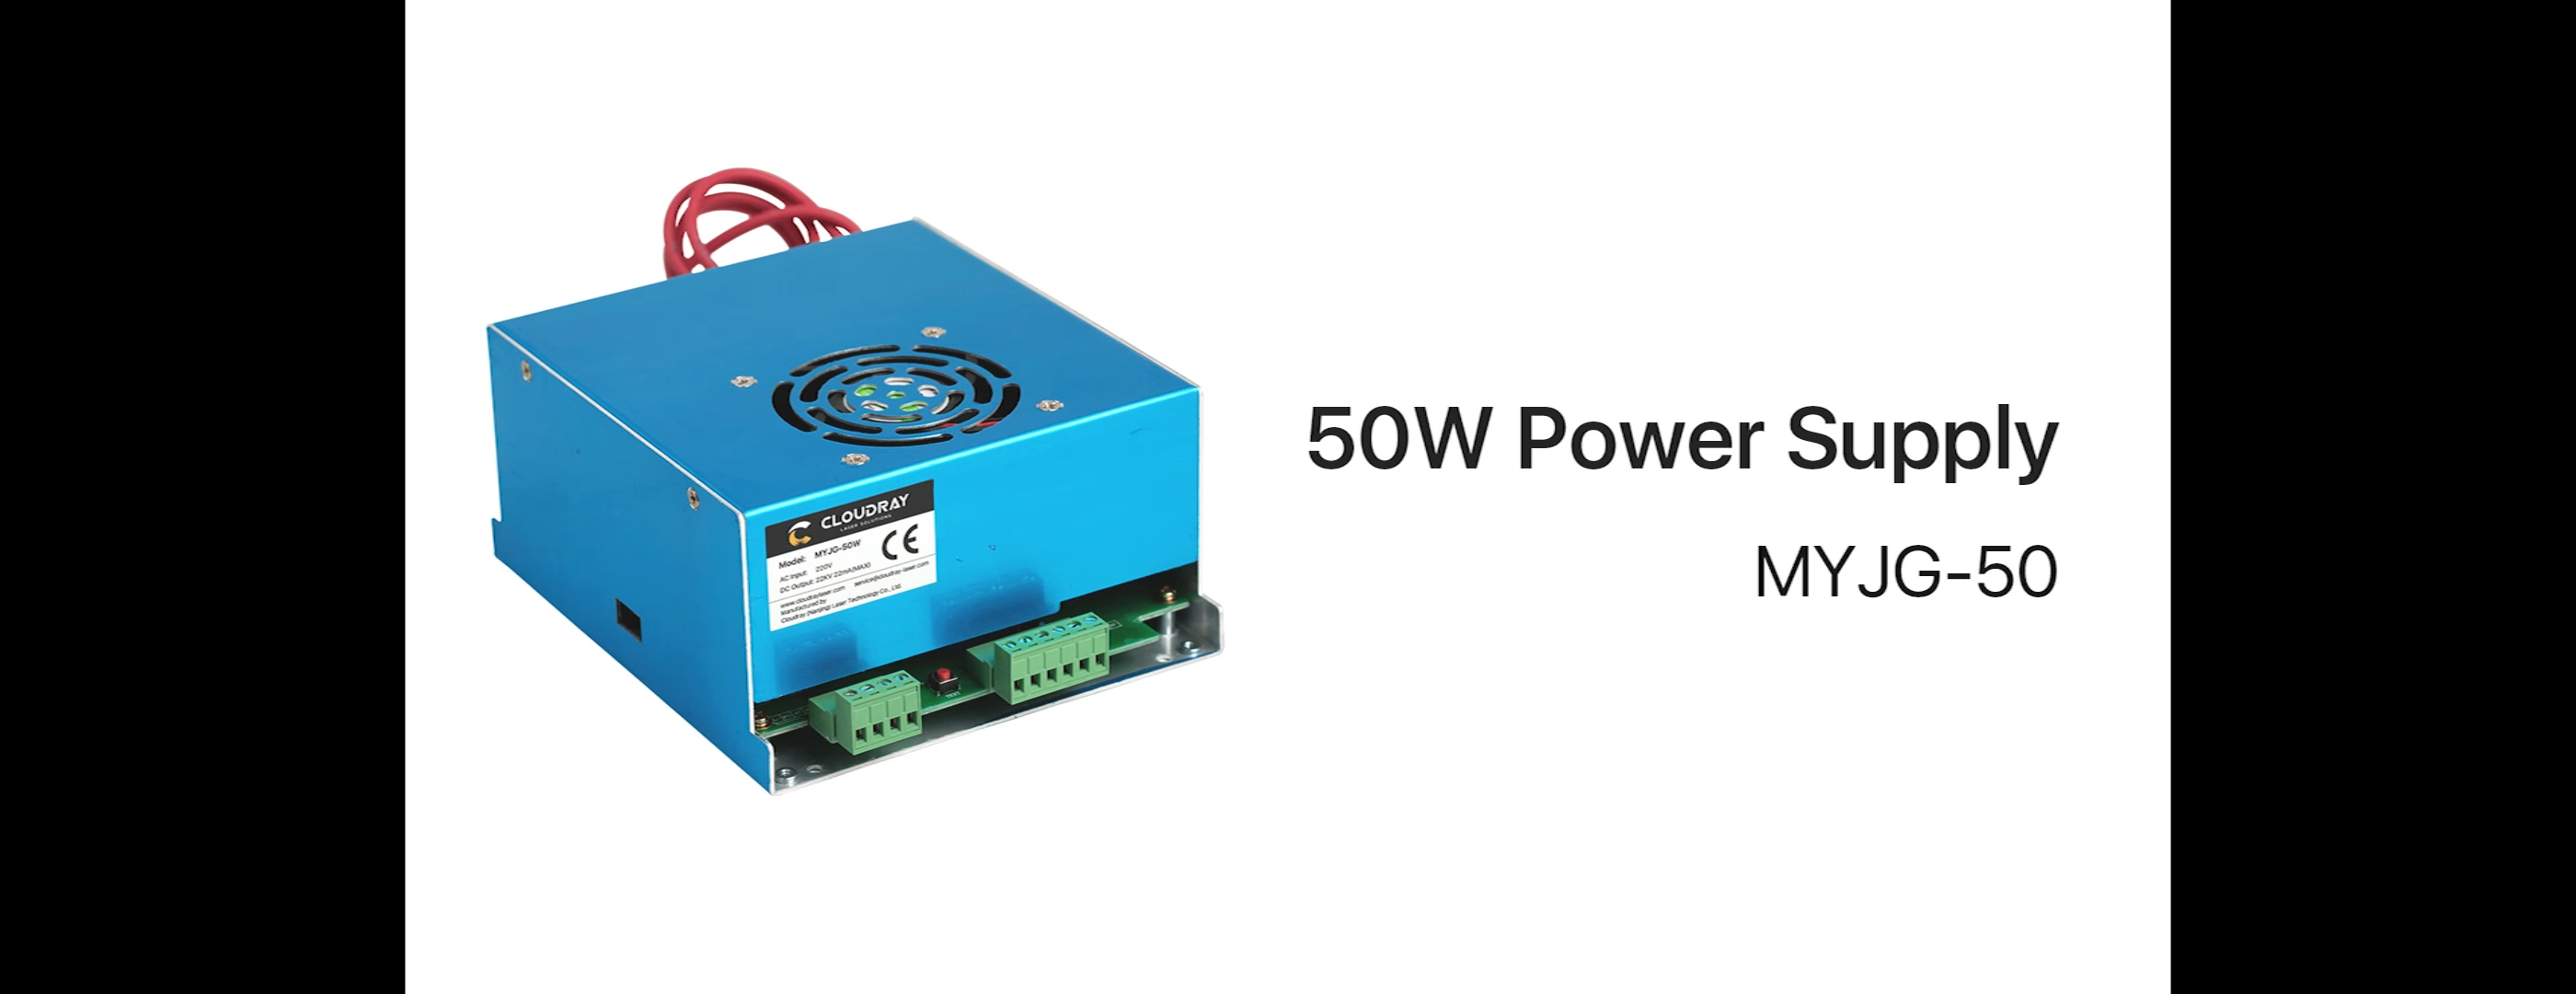 Cloudray CL1070 CO2 Laser Power Supply MYJG-40W 50W Green Shell